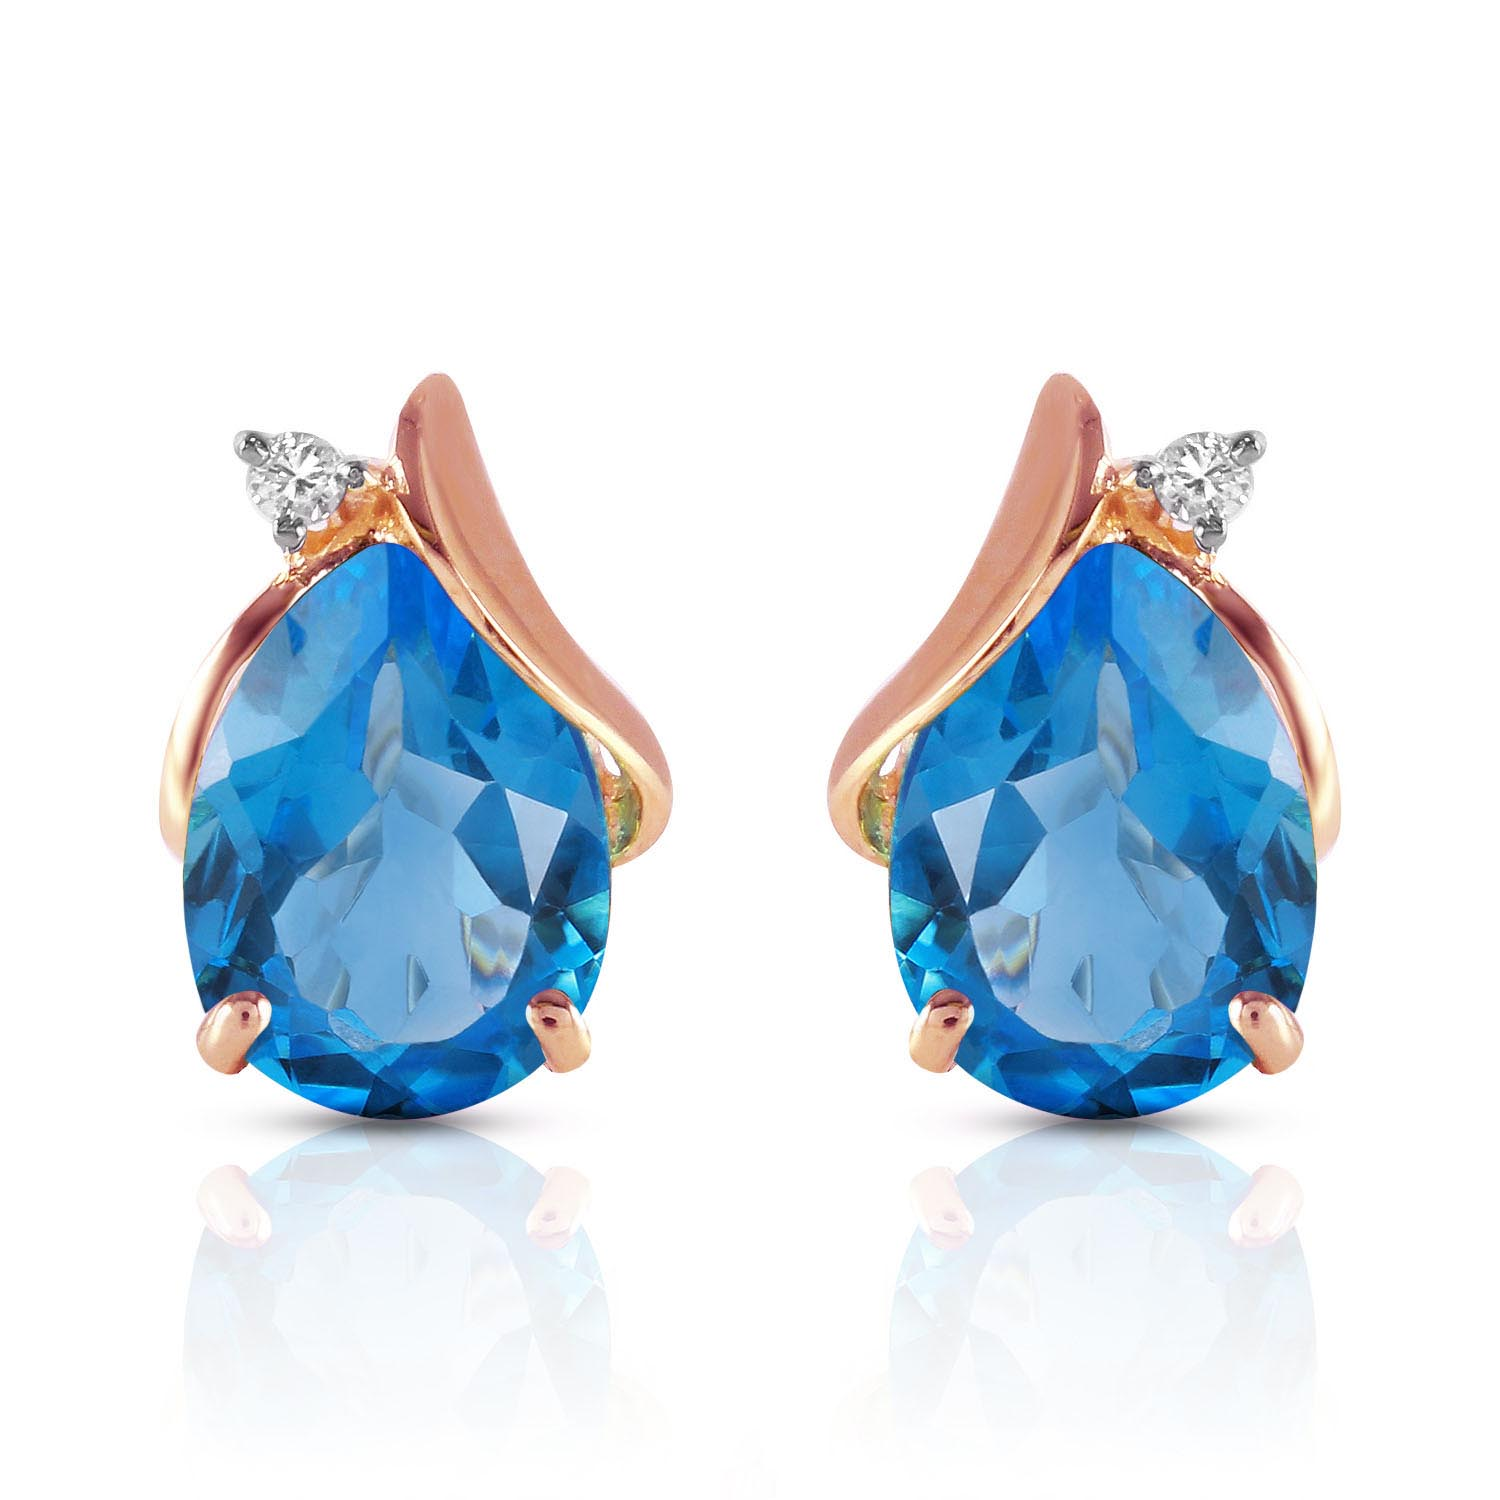 Blue Topaz and Diamond Stud Earrings 5.0ctw in 9ct Rose Gold